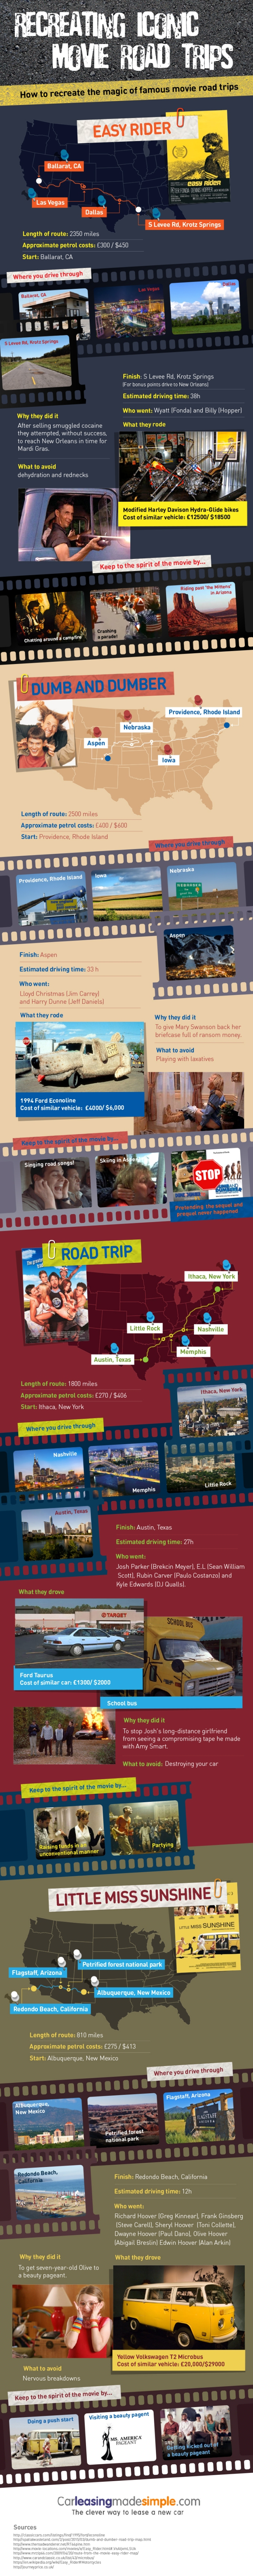 Movie Trips with Angus edits-maps-corrected-mod3